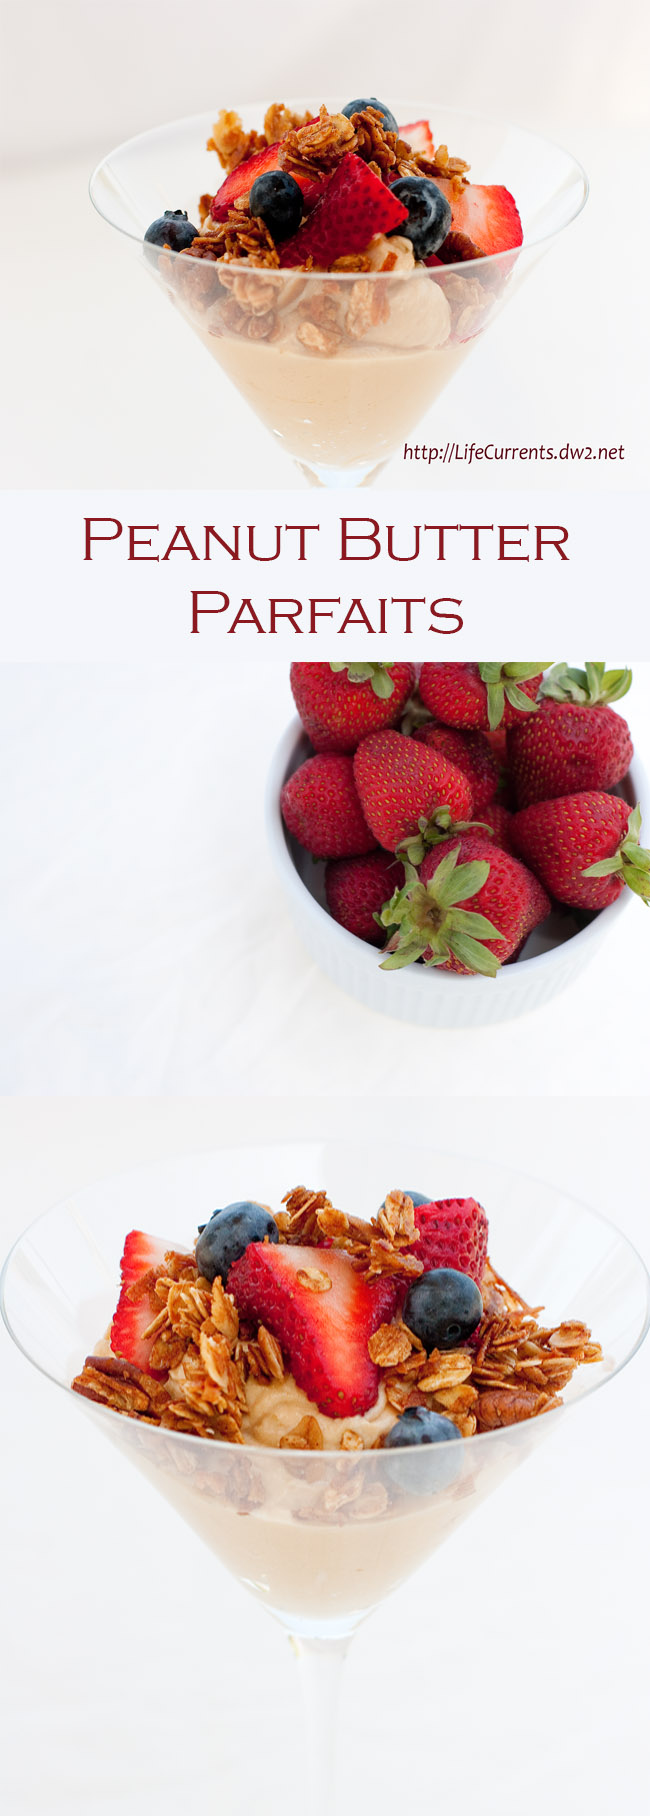 Peanut Butter Parfaits Recipe - a nice healthy breakfast that can be a grab and go